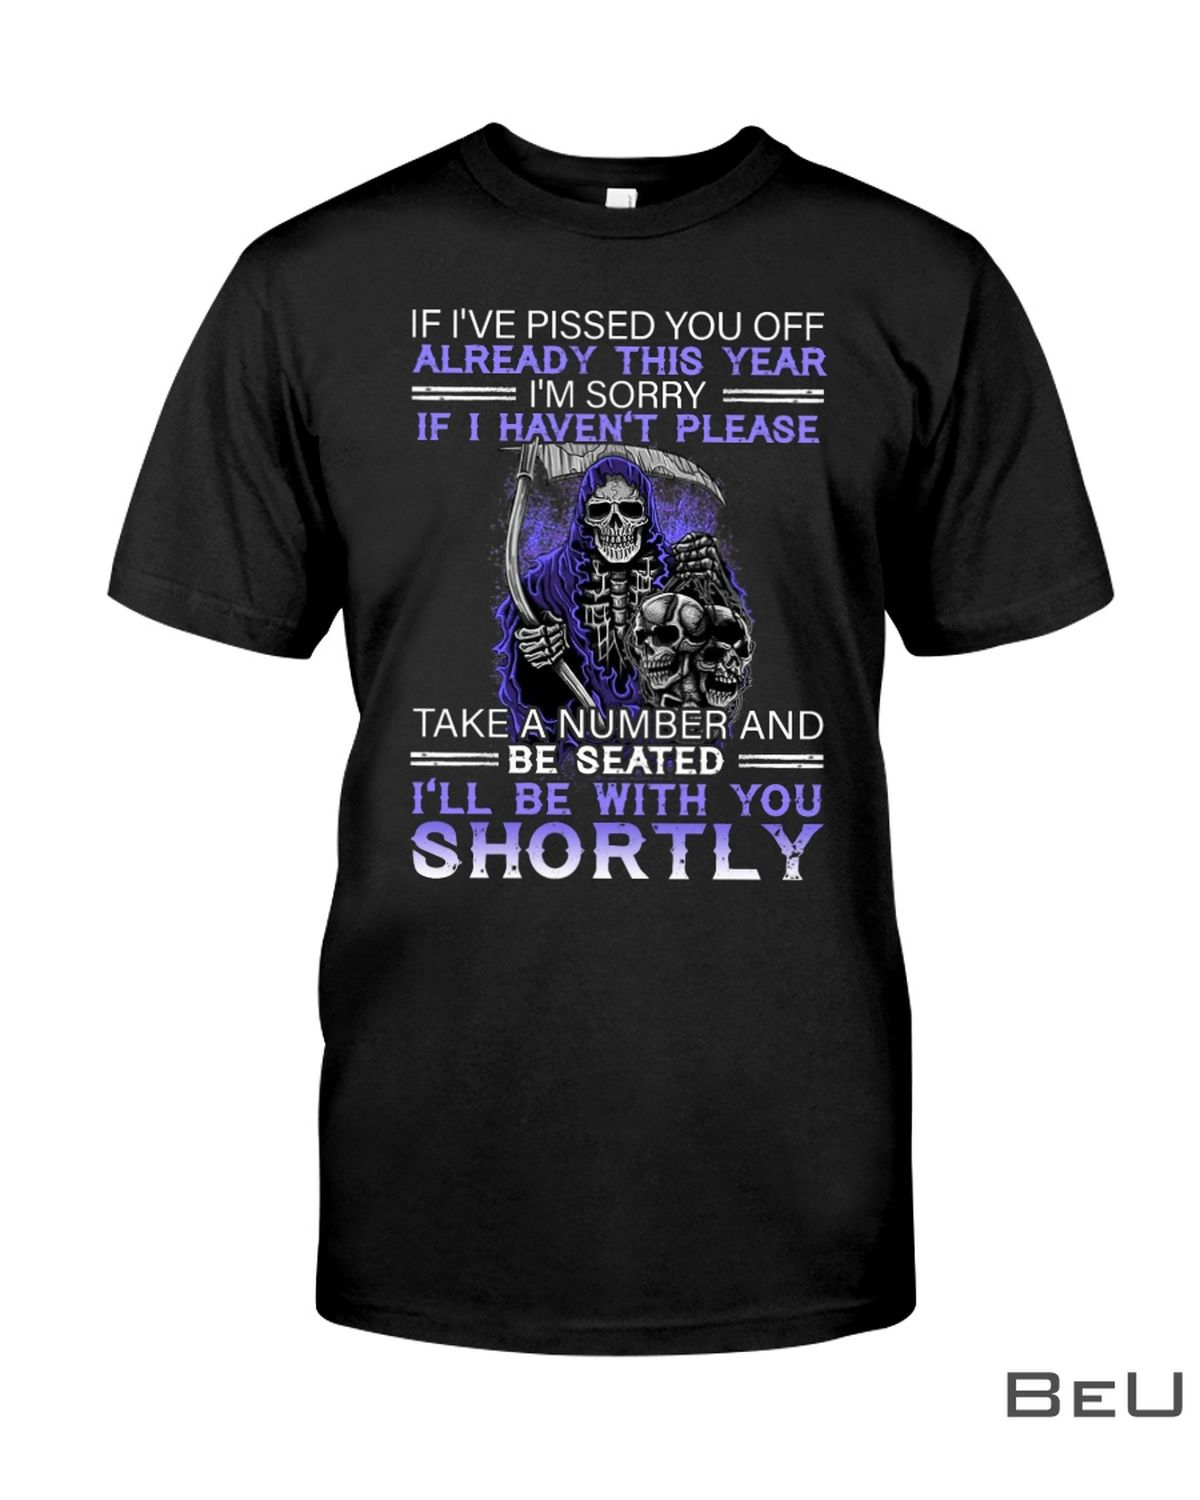 Shortly If I've Pissed You Off Already This Year I'm Sorry If I Haven't Please Shirt